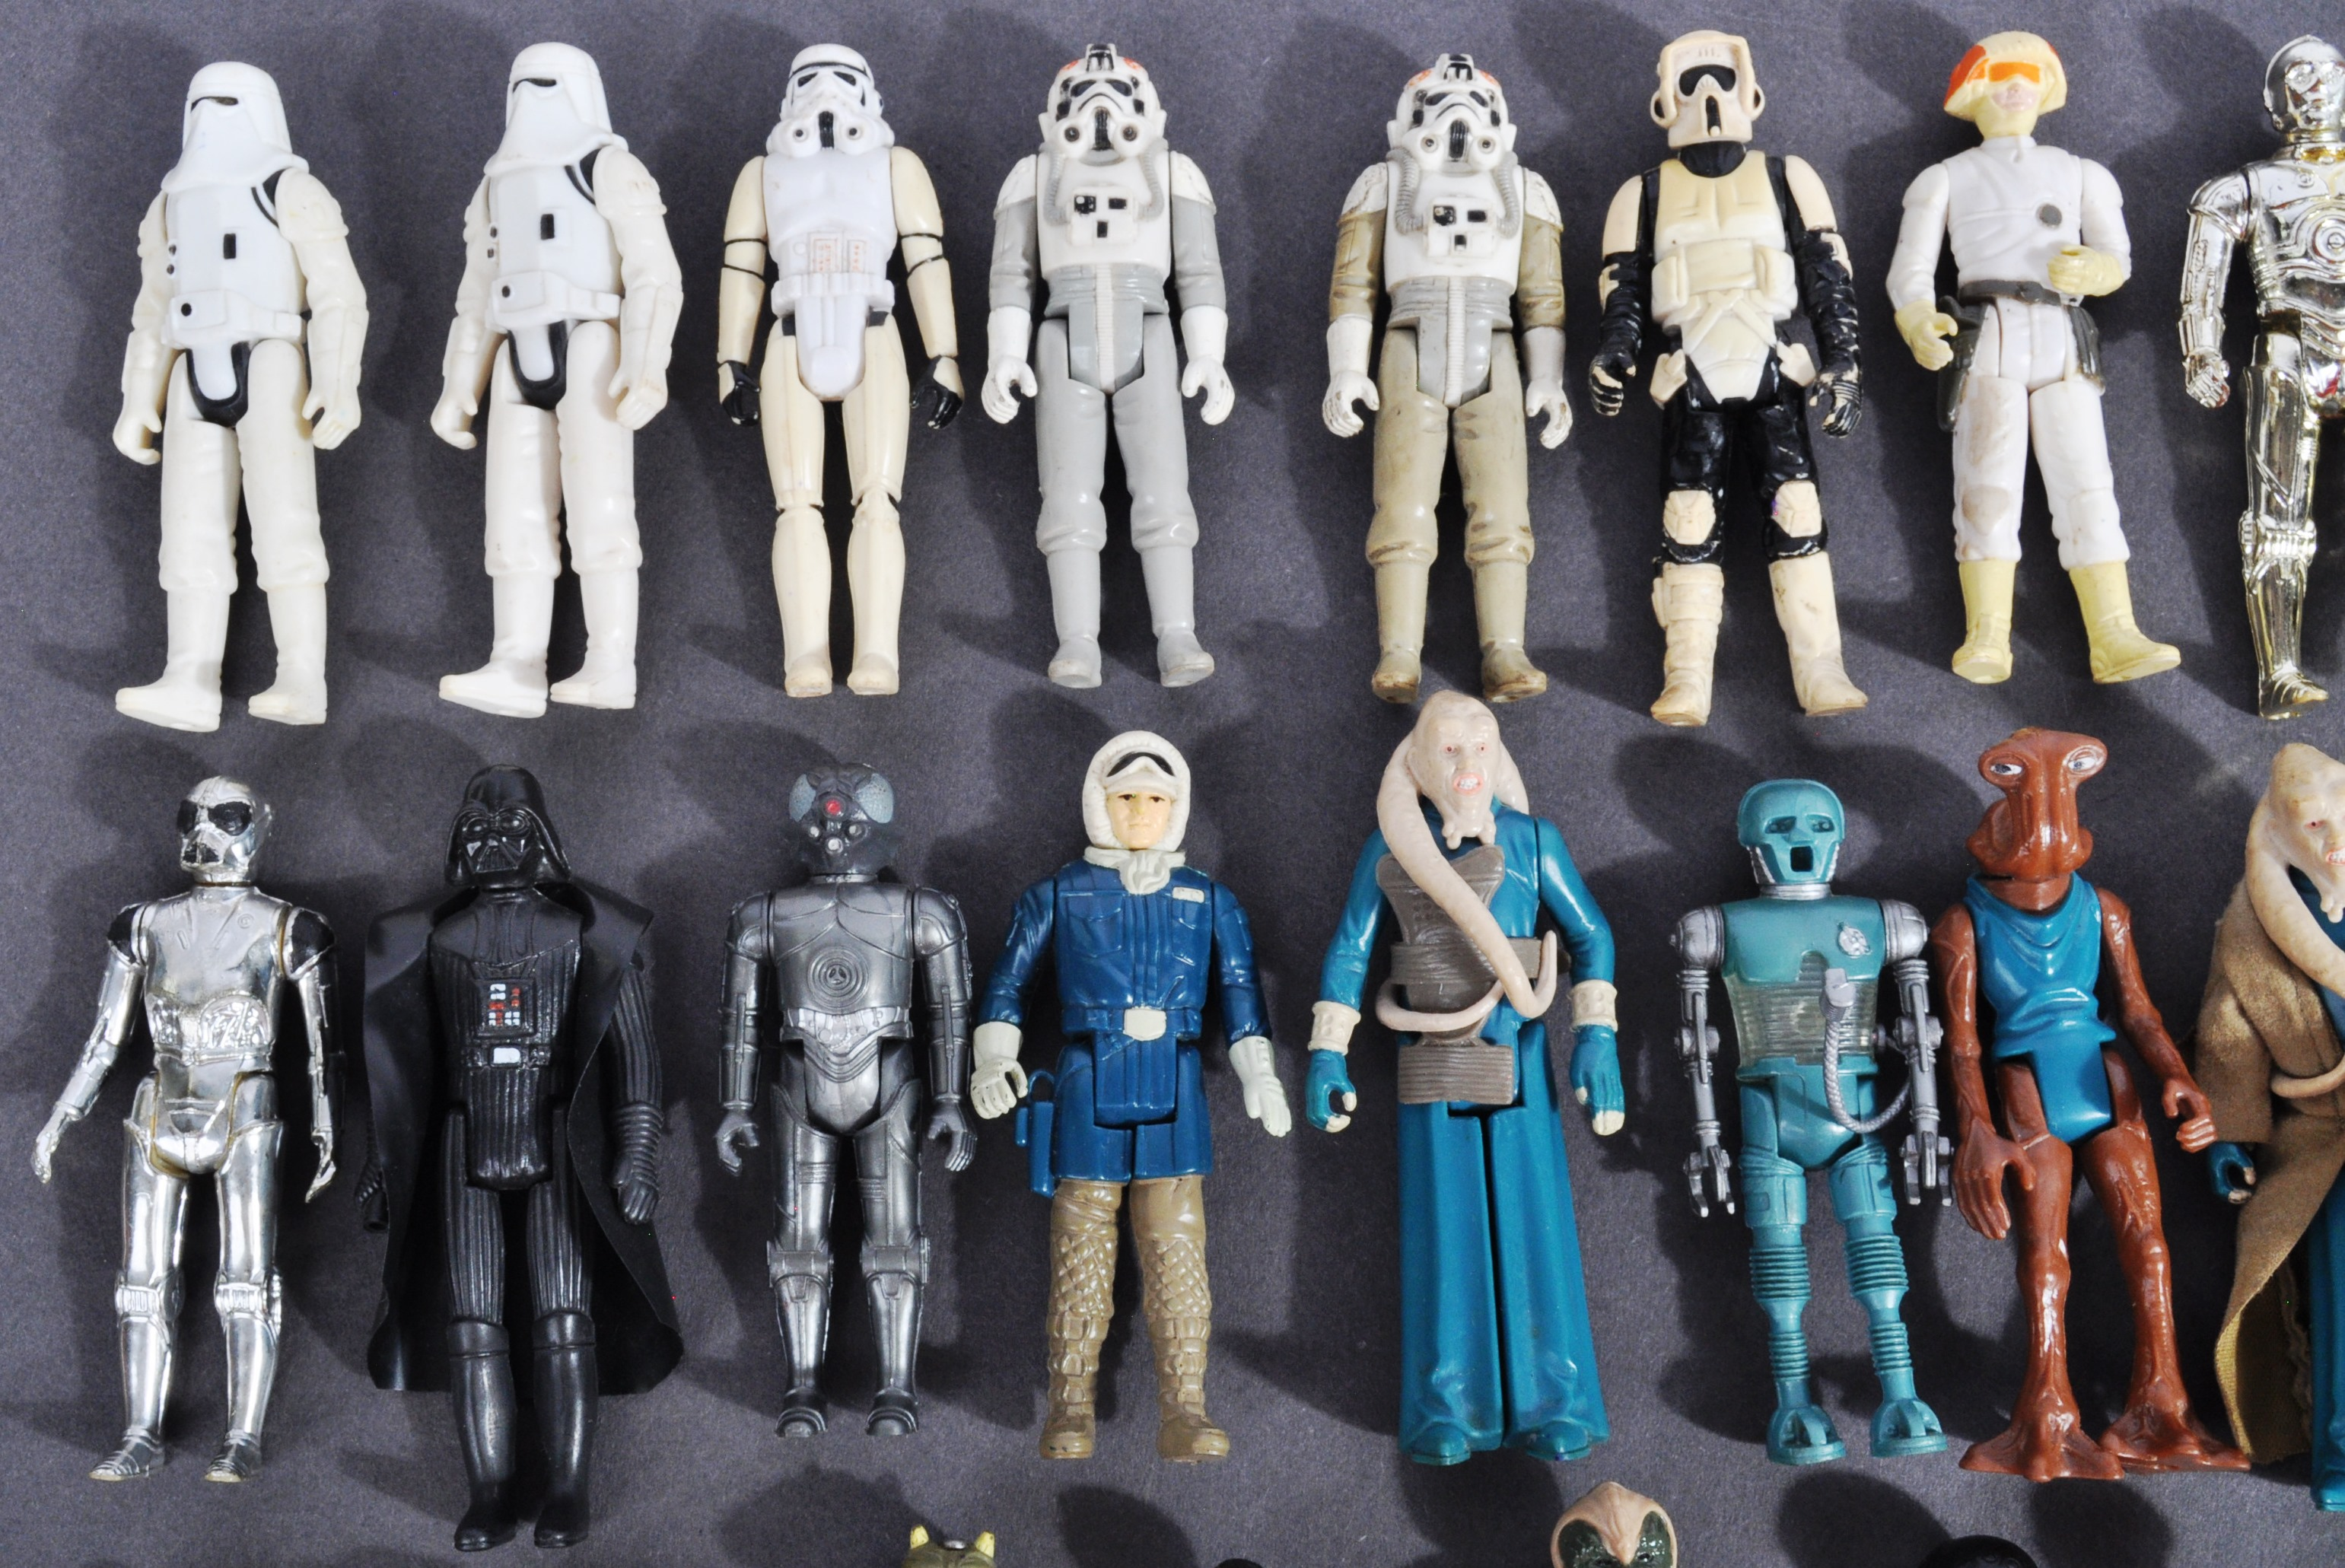 STAR WARS - COLLECTION OF VINTAGE KENNER / PALITOY ACTION FIGURES - Image 5 of 5